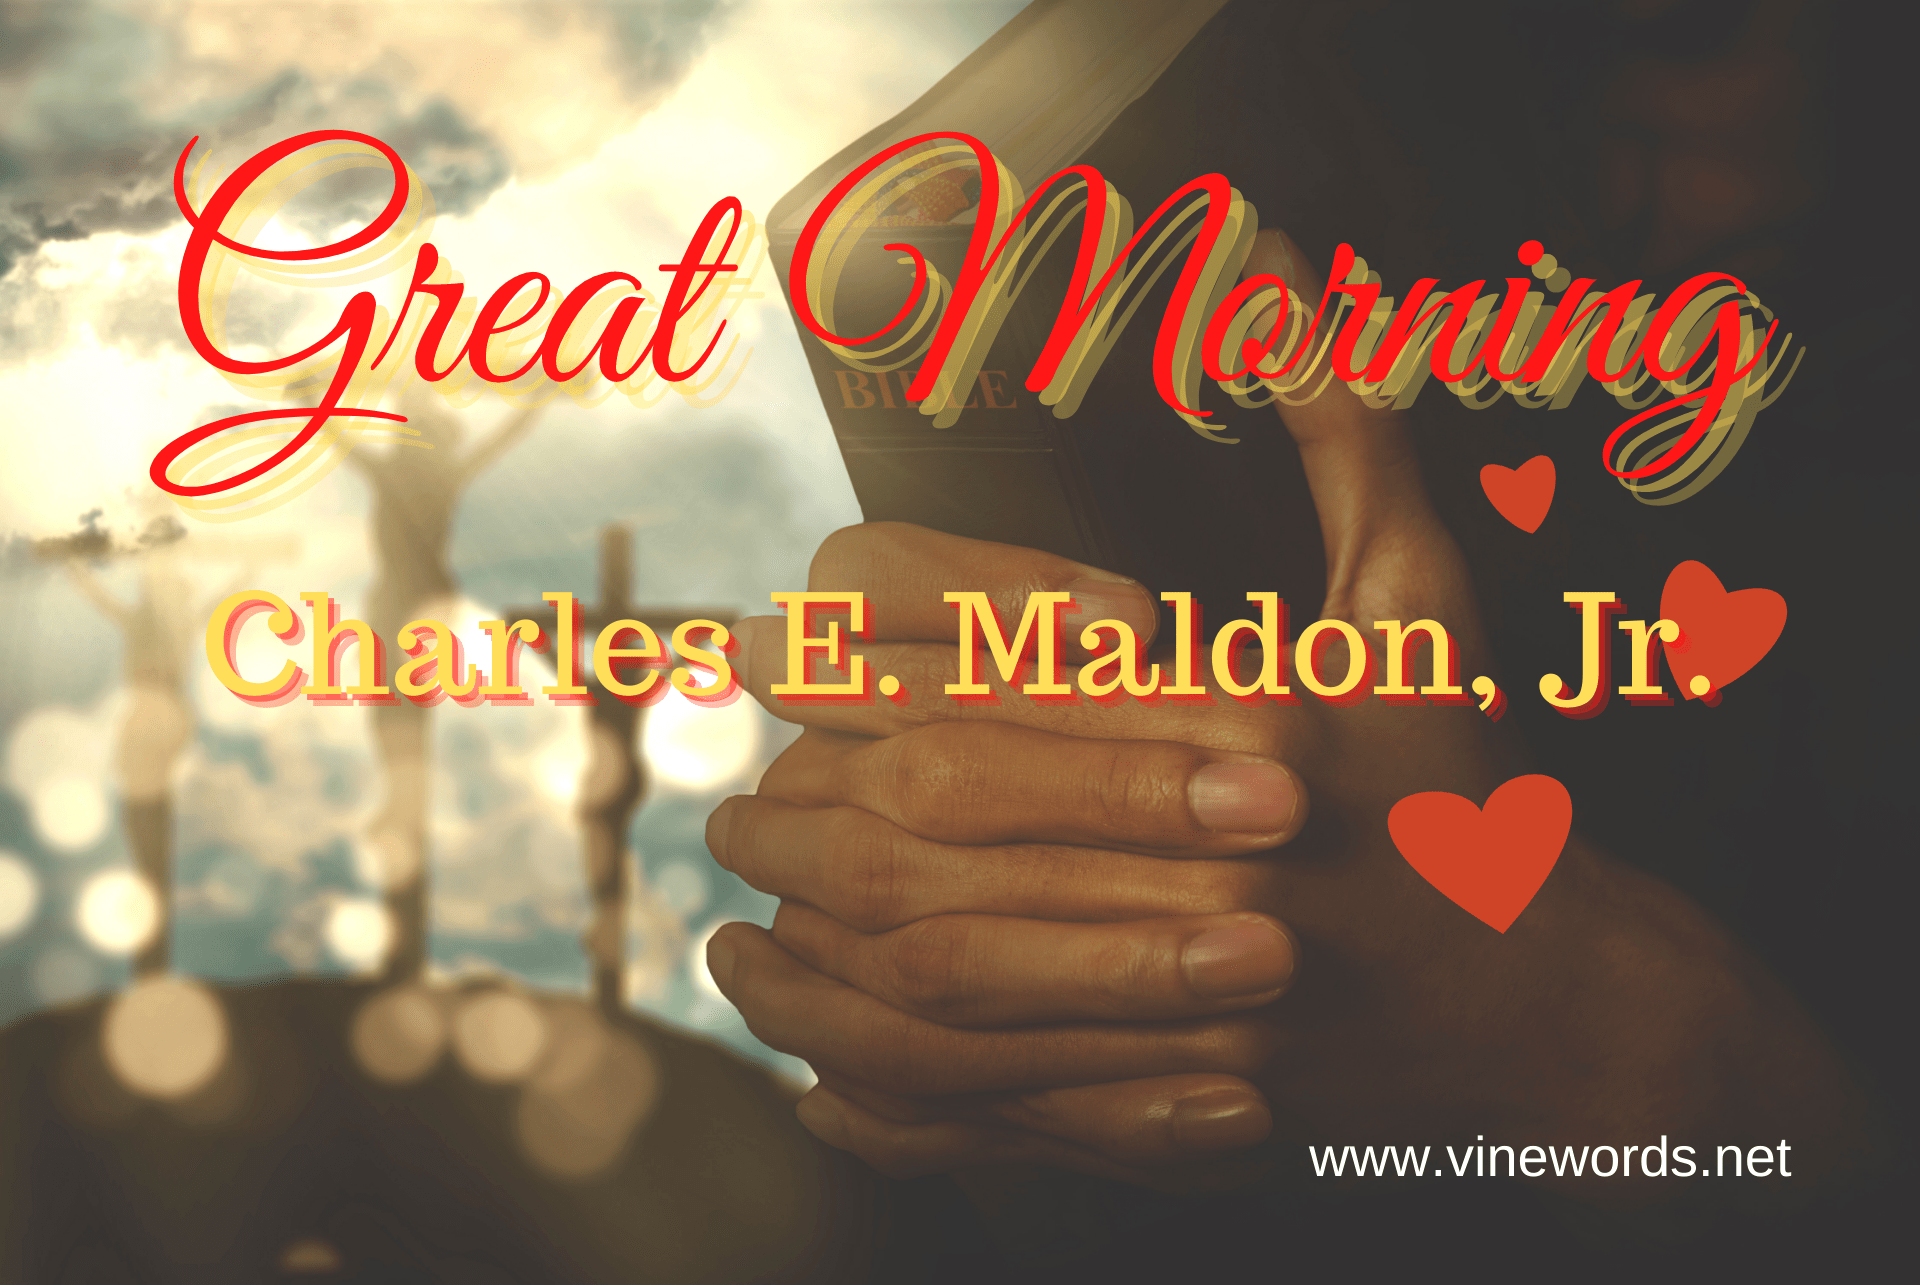 Charles E. Maldon, Jr.: Great Morning